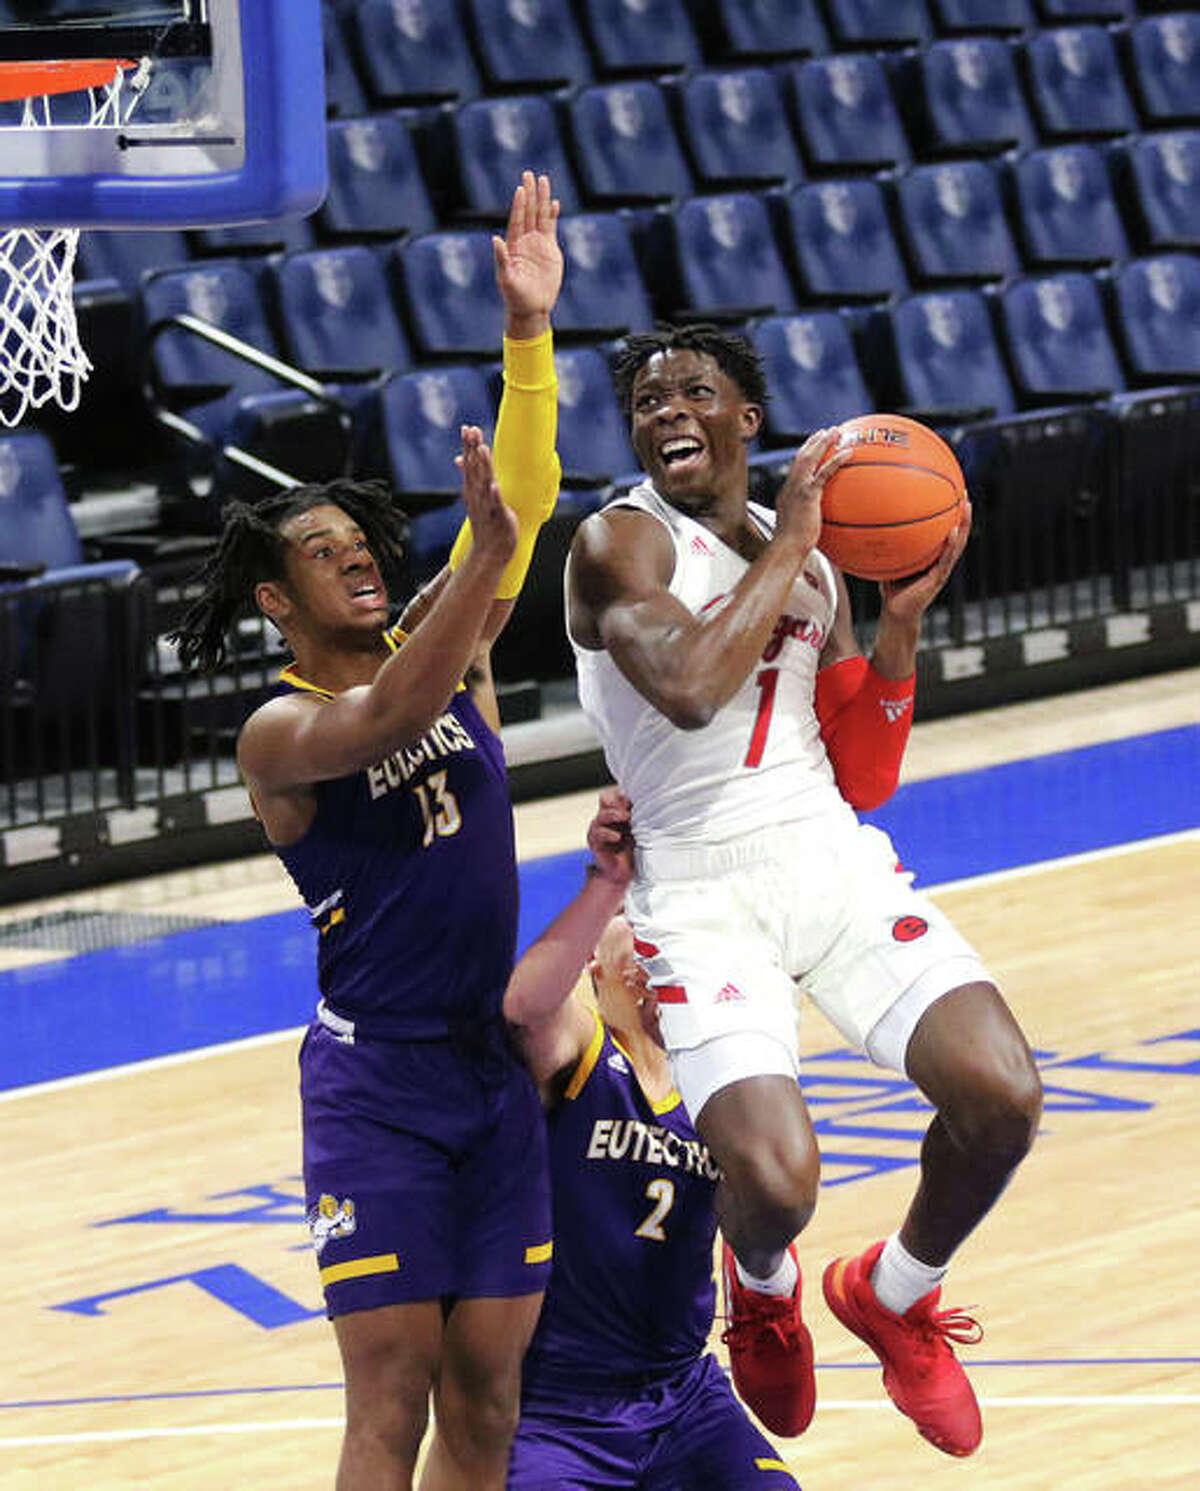 SIUE's Mike Adewunmi (1) scores while driving to the basket against UHSP's Jason Udolisa (left) and Devon Howard on Saturday night at Chaifetz Center in St. Louis.